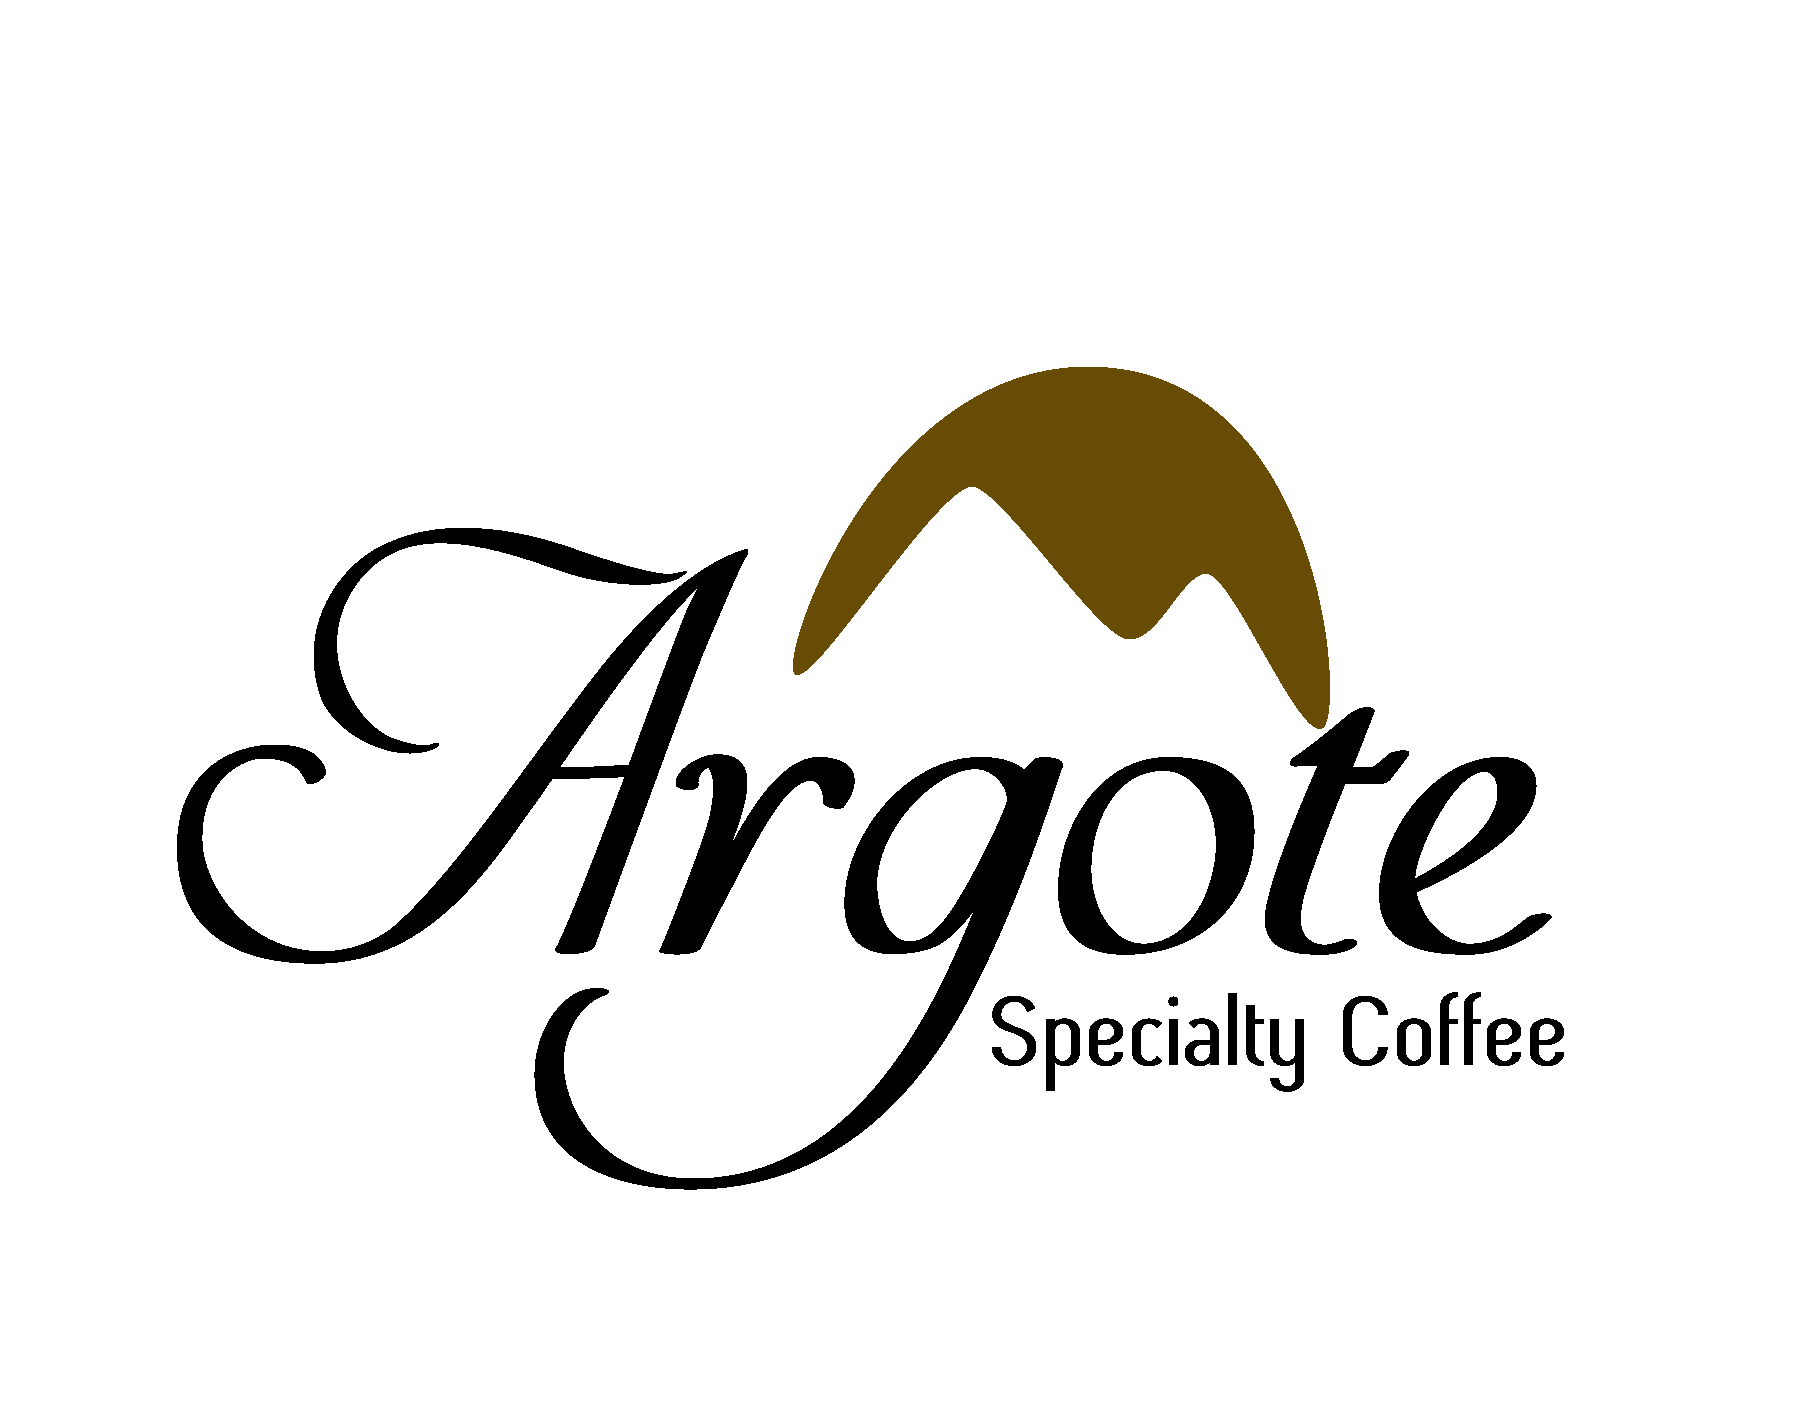 These coffees are a part of Argote Specialty Coffee, one of the leading small entrepreneurial family exporters in Colombia.